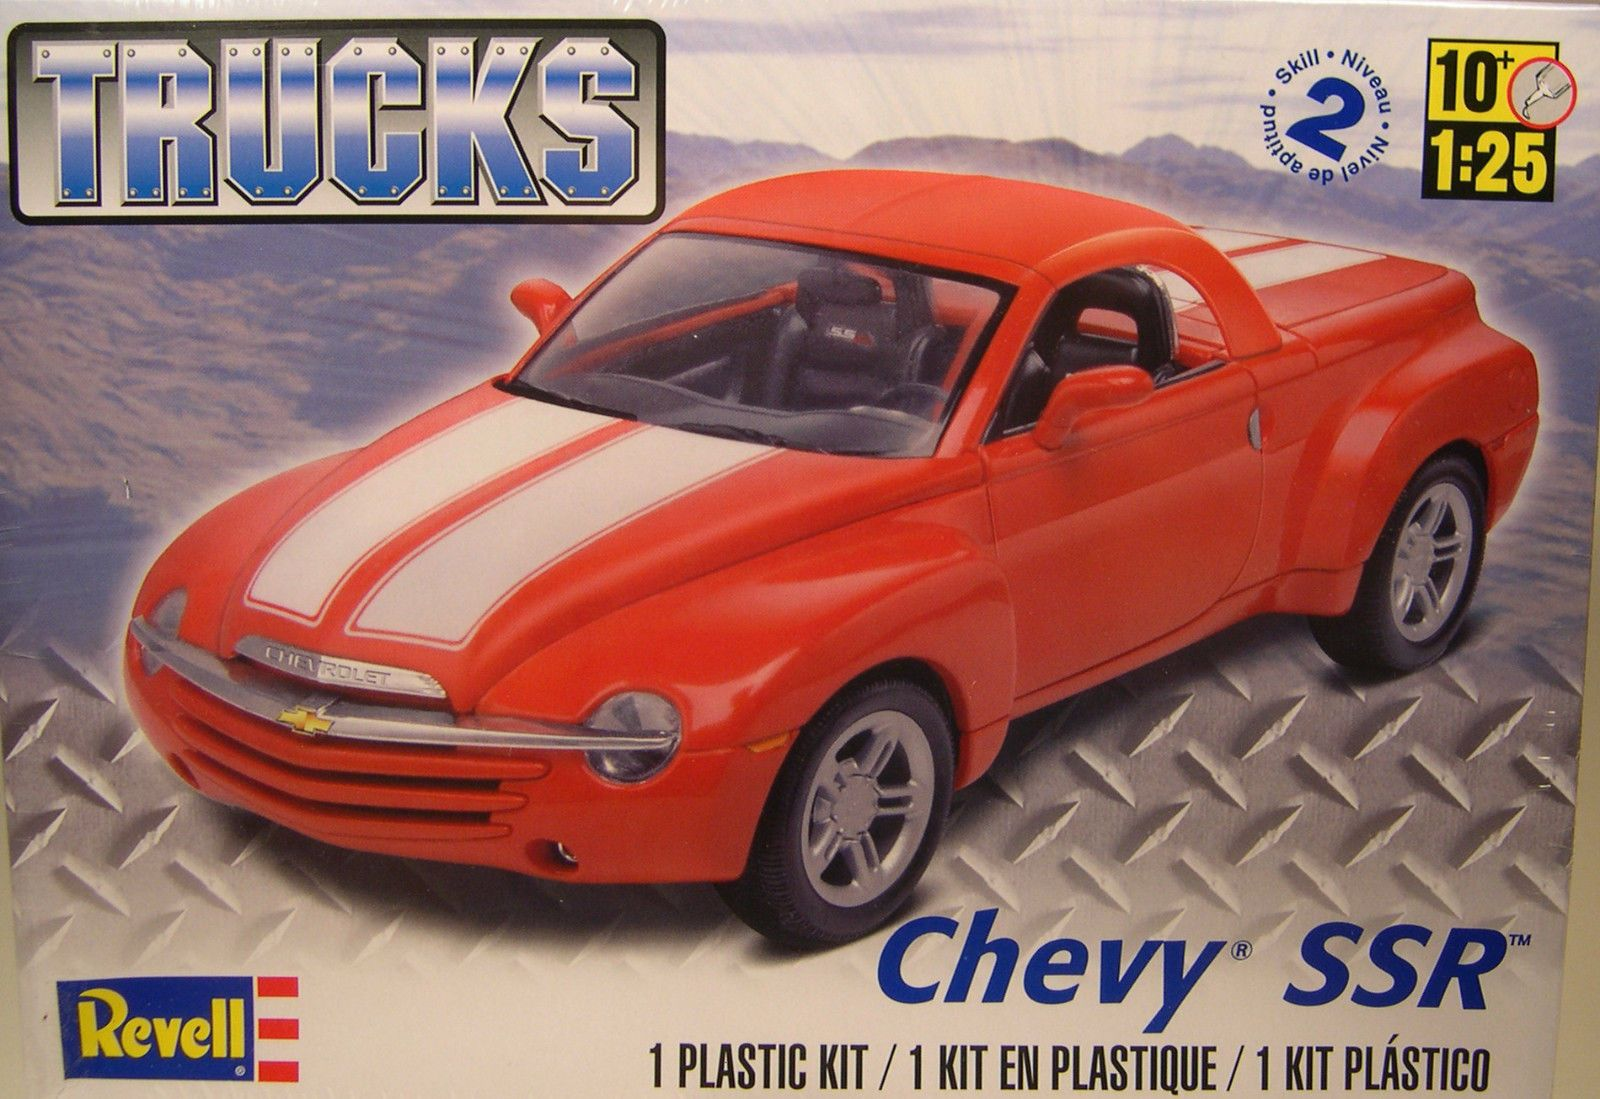 Revell 1 25 Scale Chevy Ssr Trucks Series Plastic Model Kit Ebay